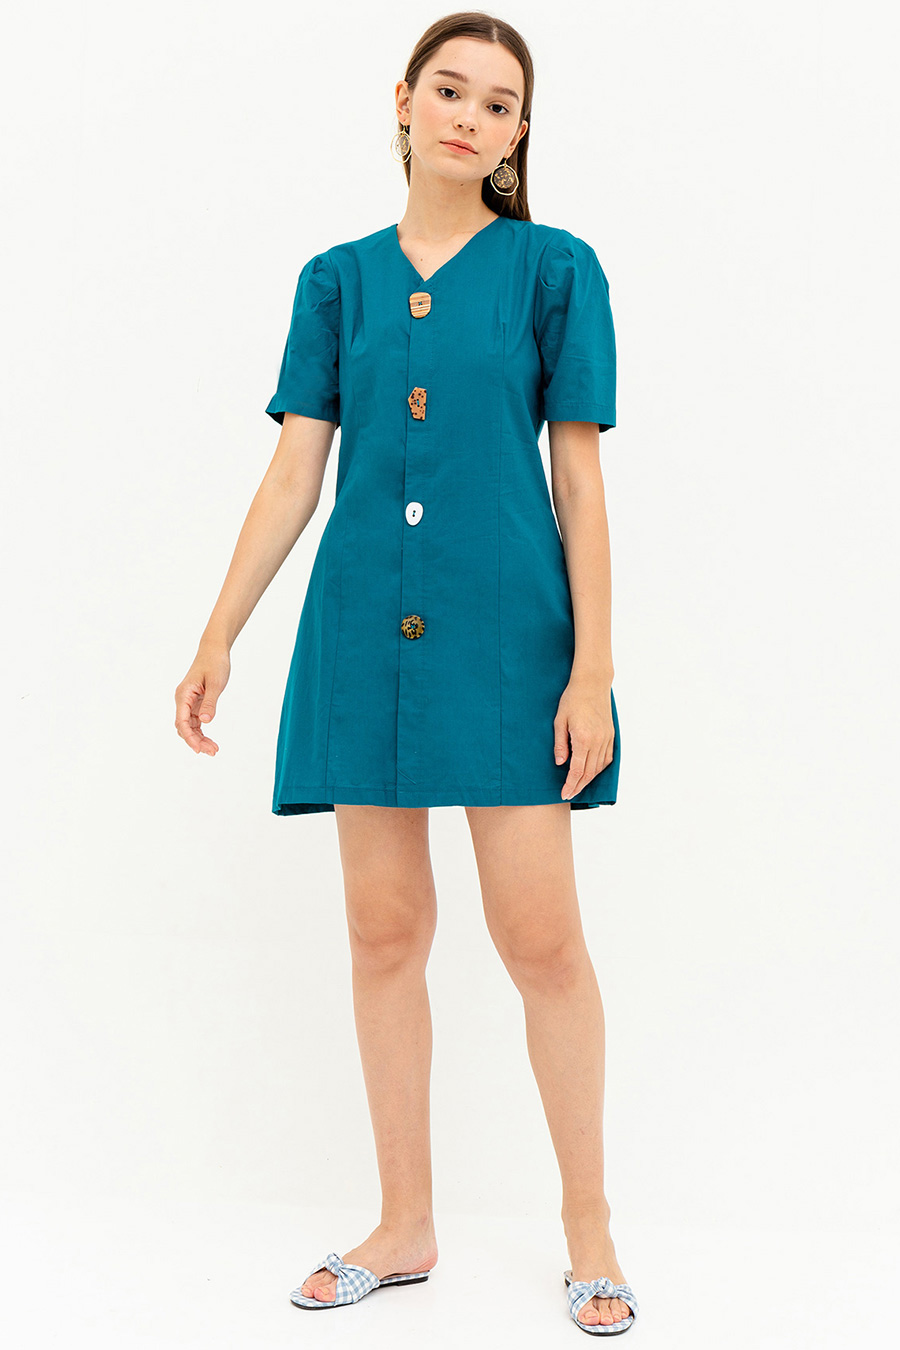 *SALE* HEATHER DRESS - TEAL